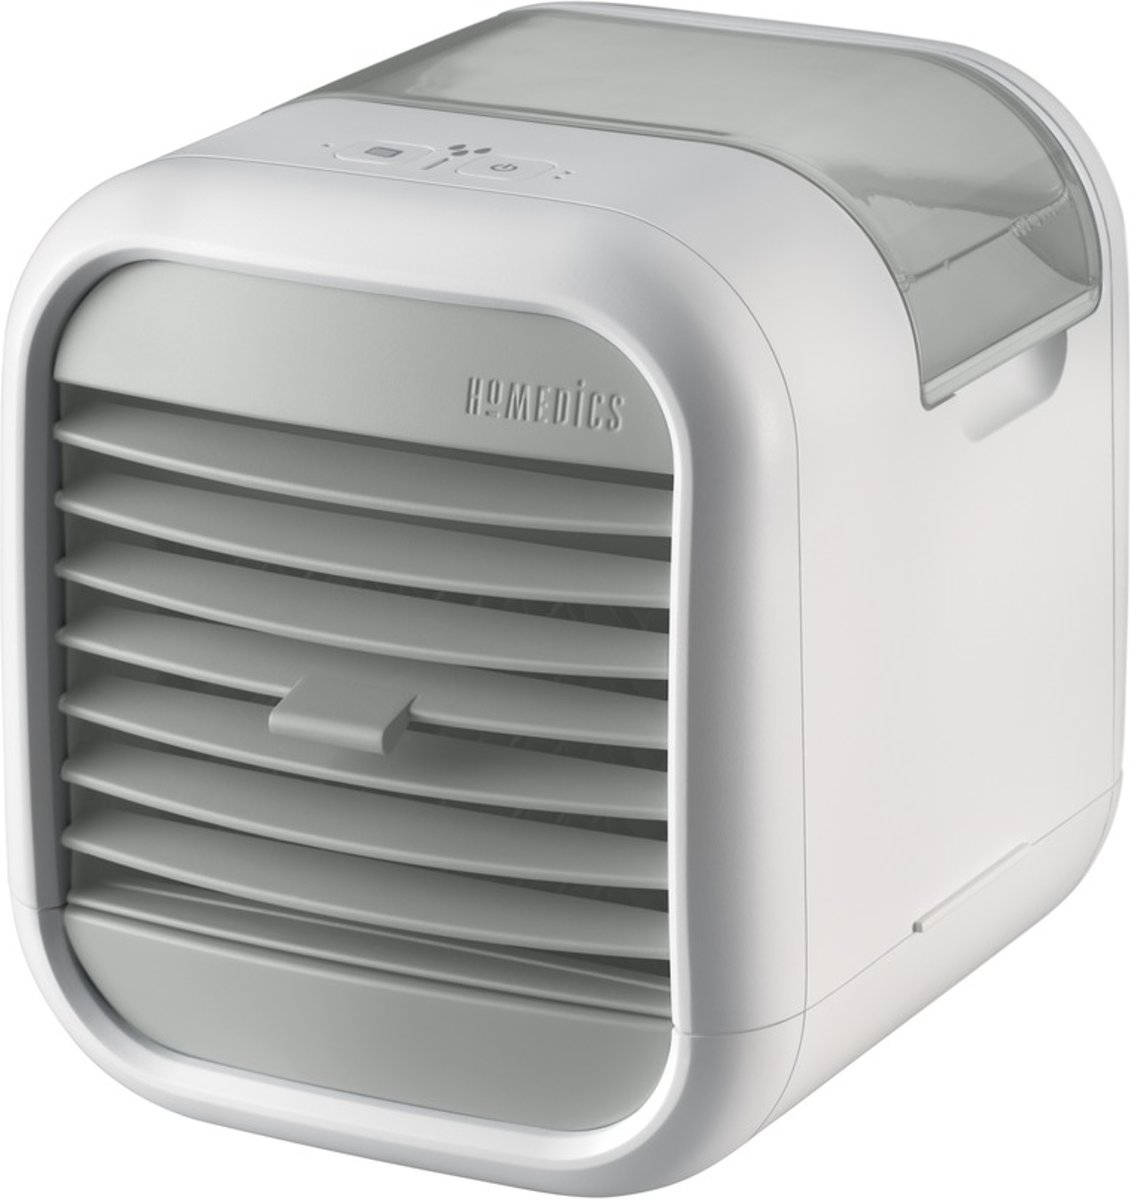 Homedics PAC25 My Chill Personal Cooler kopen